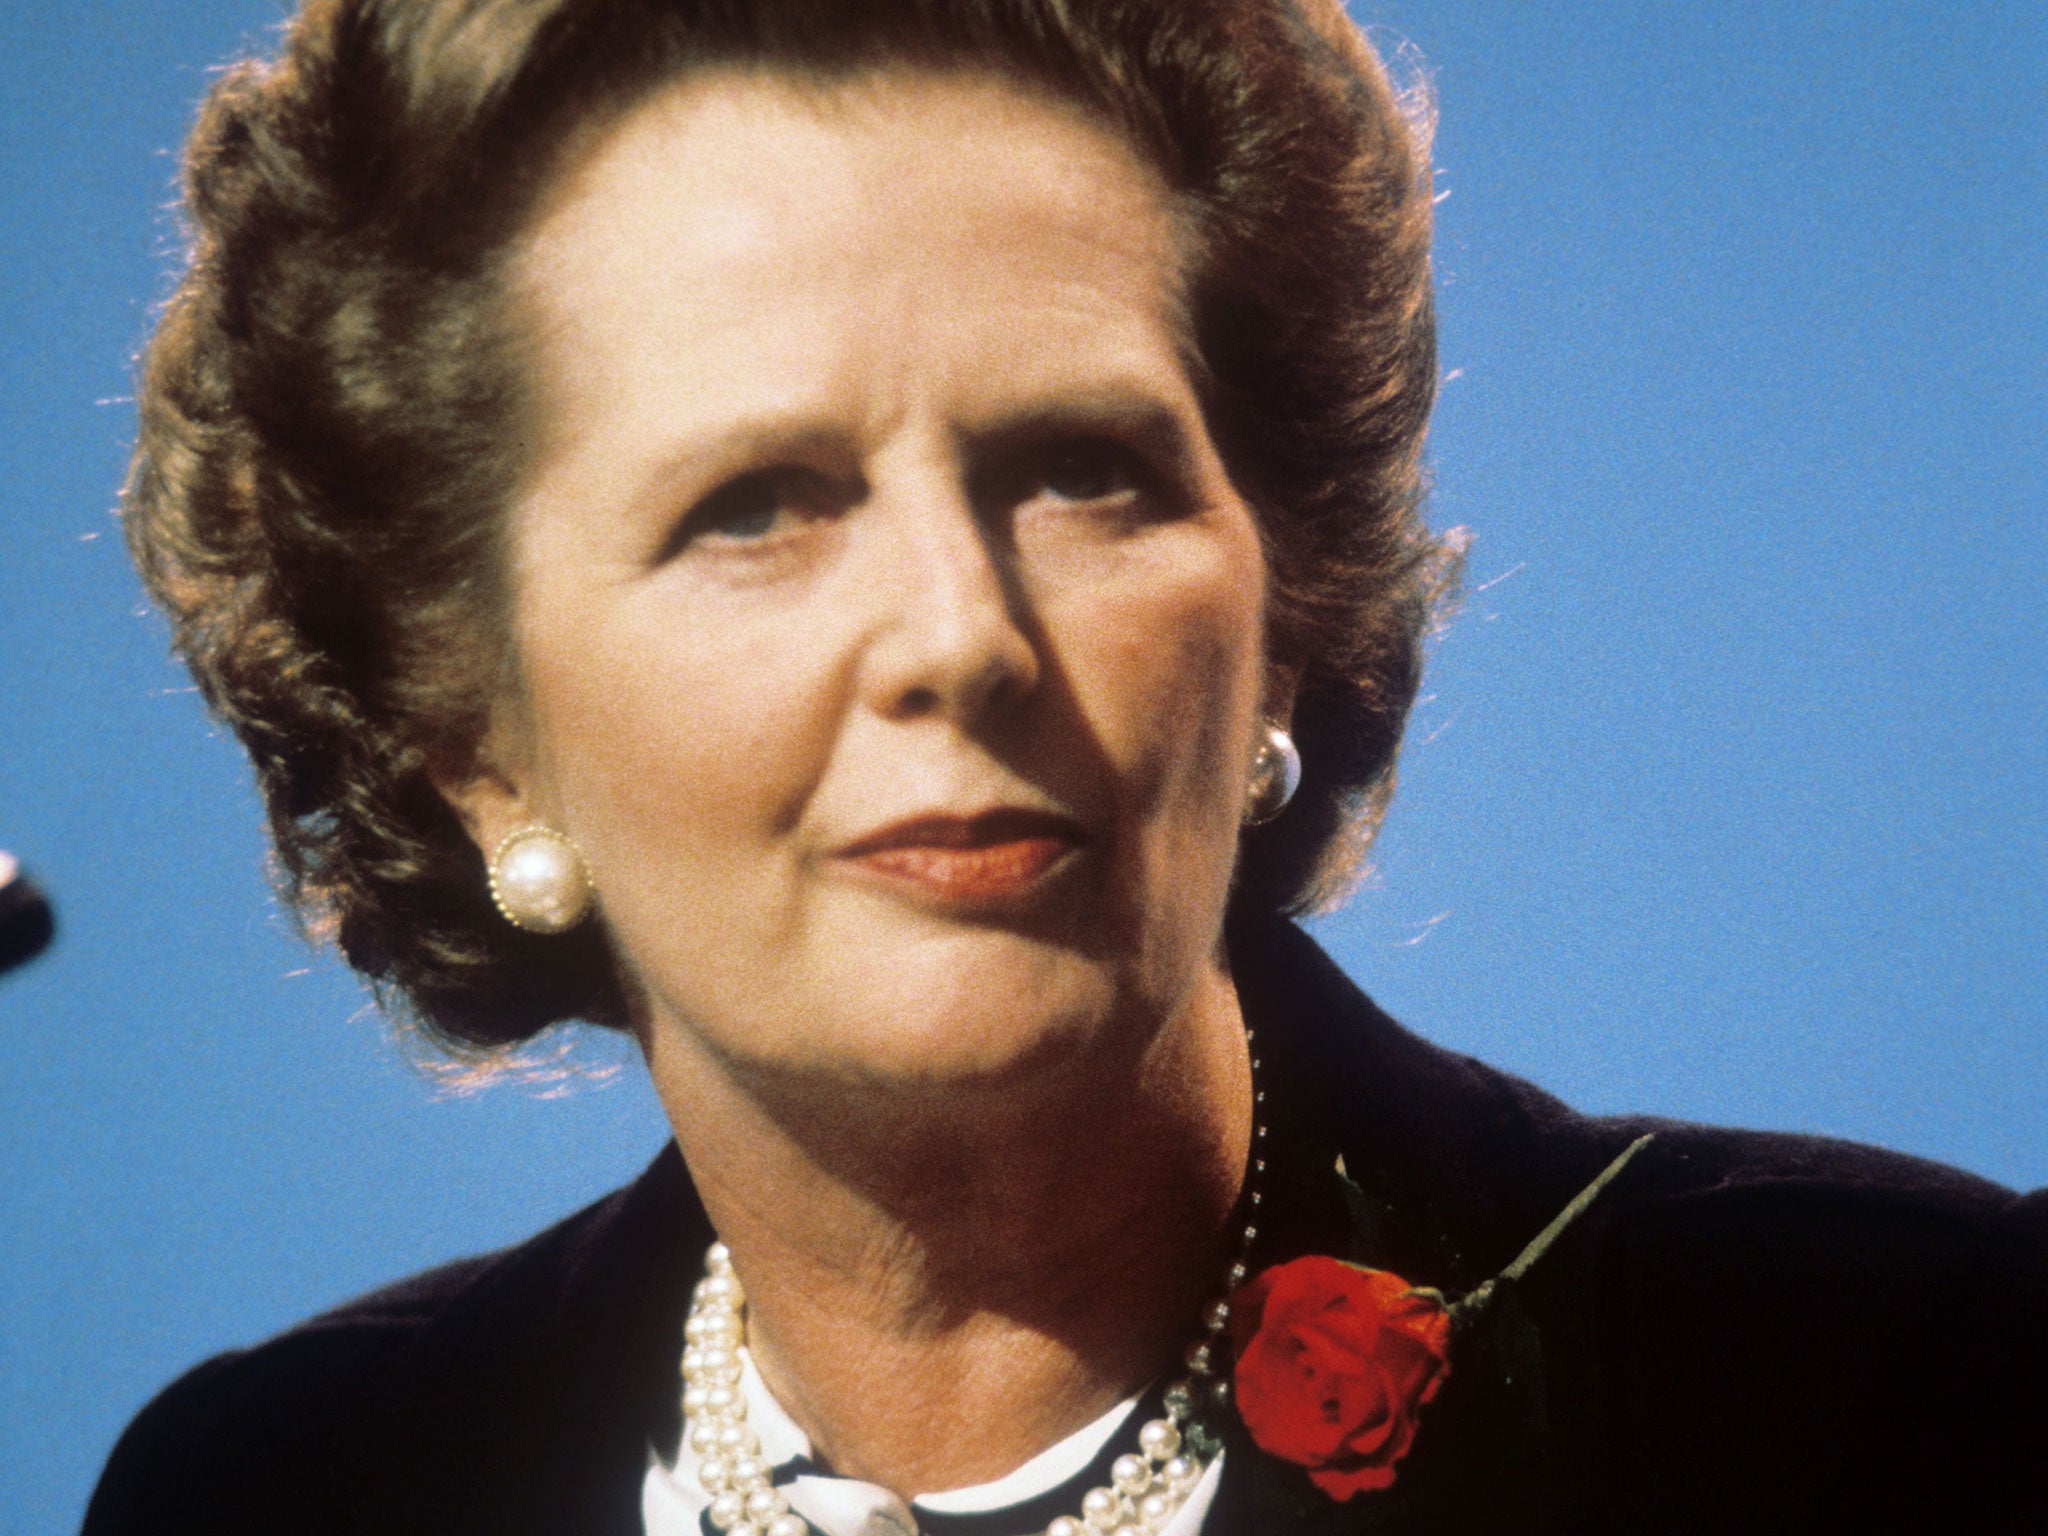 margaret thatcher research papers Essay/term paper: margaret thatcher essay, term paper, research paper: biography see all college papers and term papers on biography free essays available online.